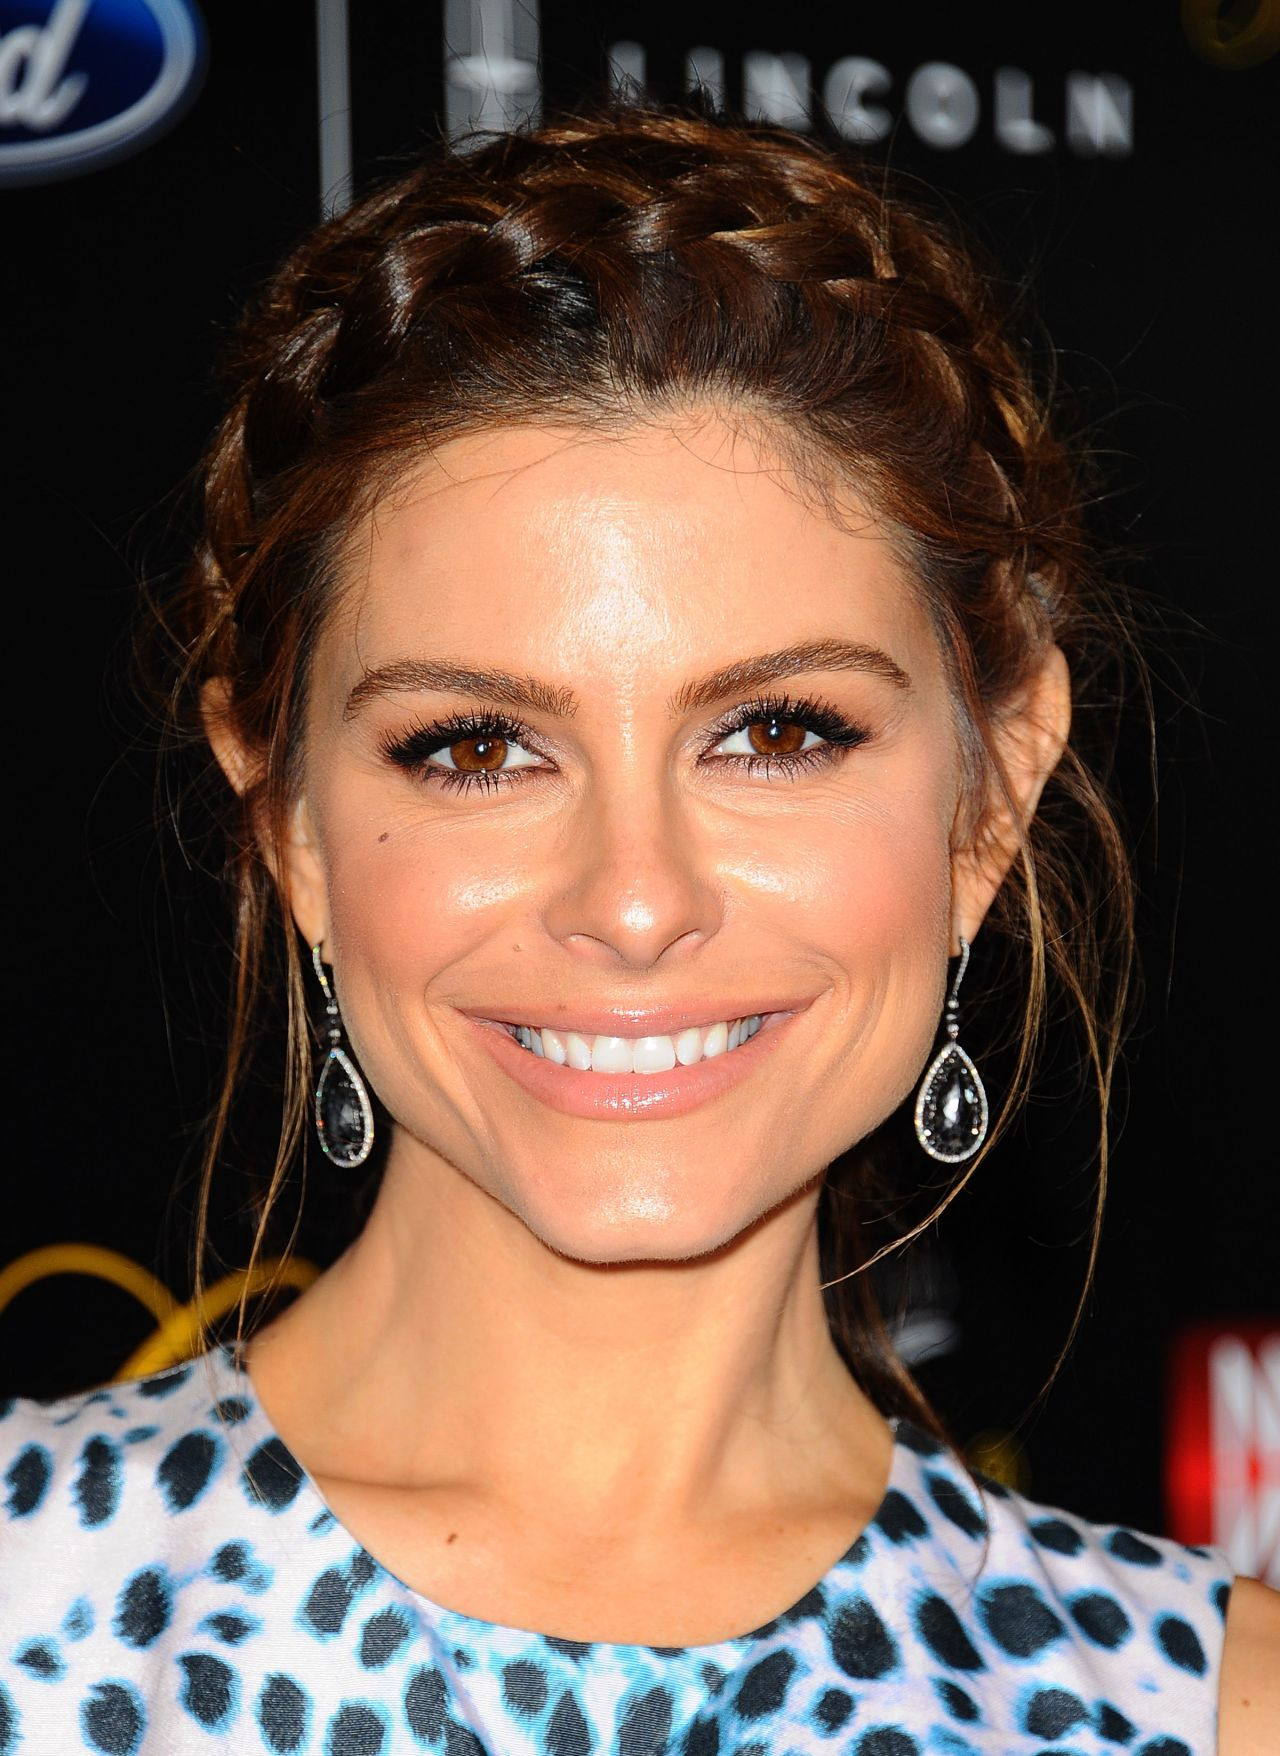 Maria Menounos – 2015 Gracies Awards at The <b>Beverly Hilton</b> Hotel in Beverly ... - maria-menounos-2015-gracies-awards-at-the-beverly-hilton-hotel-in-beverly-hills_7